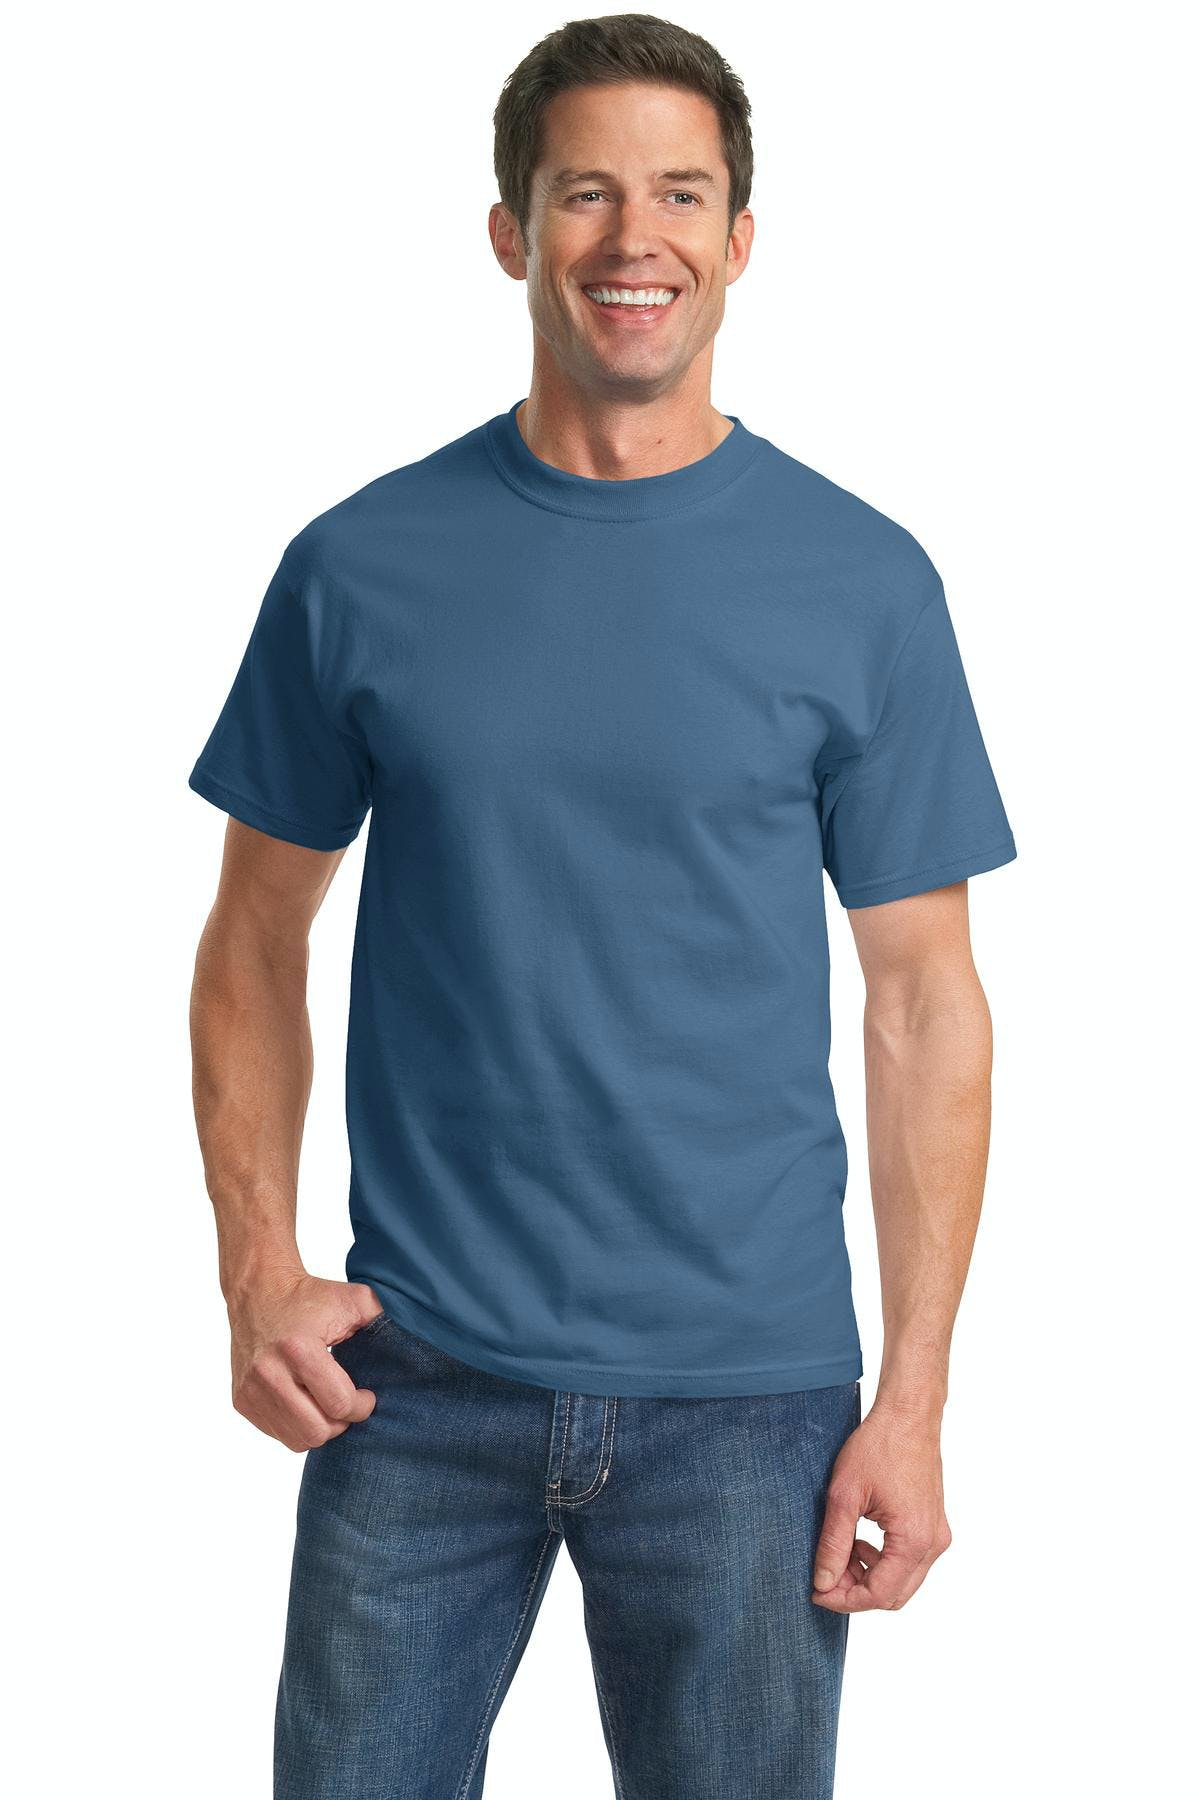 Port & Company® - Tall Essential Tee - sold by PRINT CITY GRAPHICS, INC